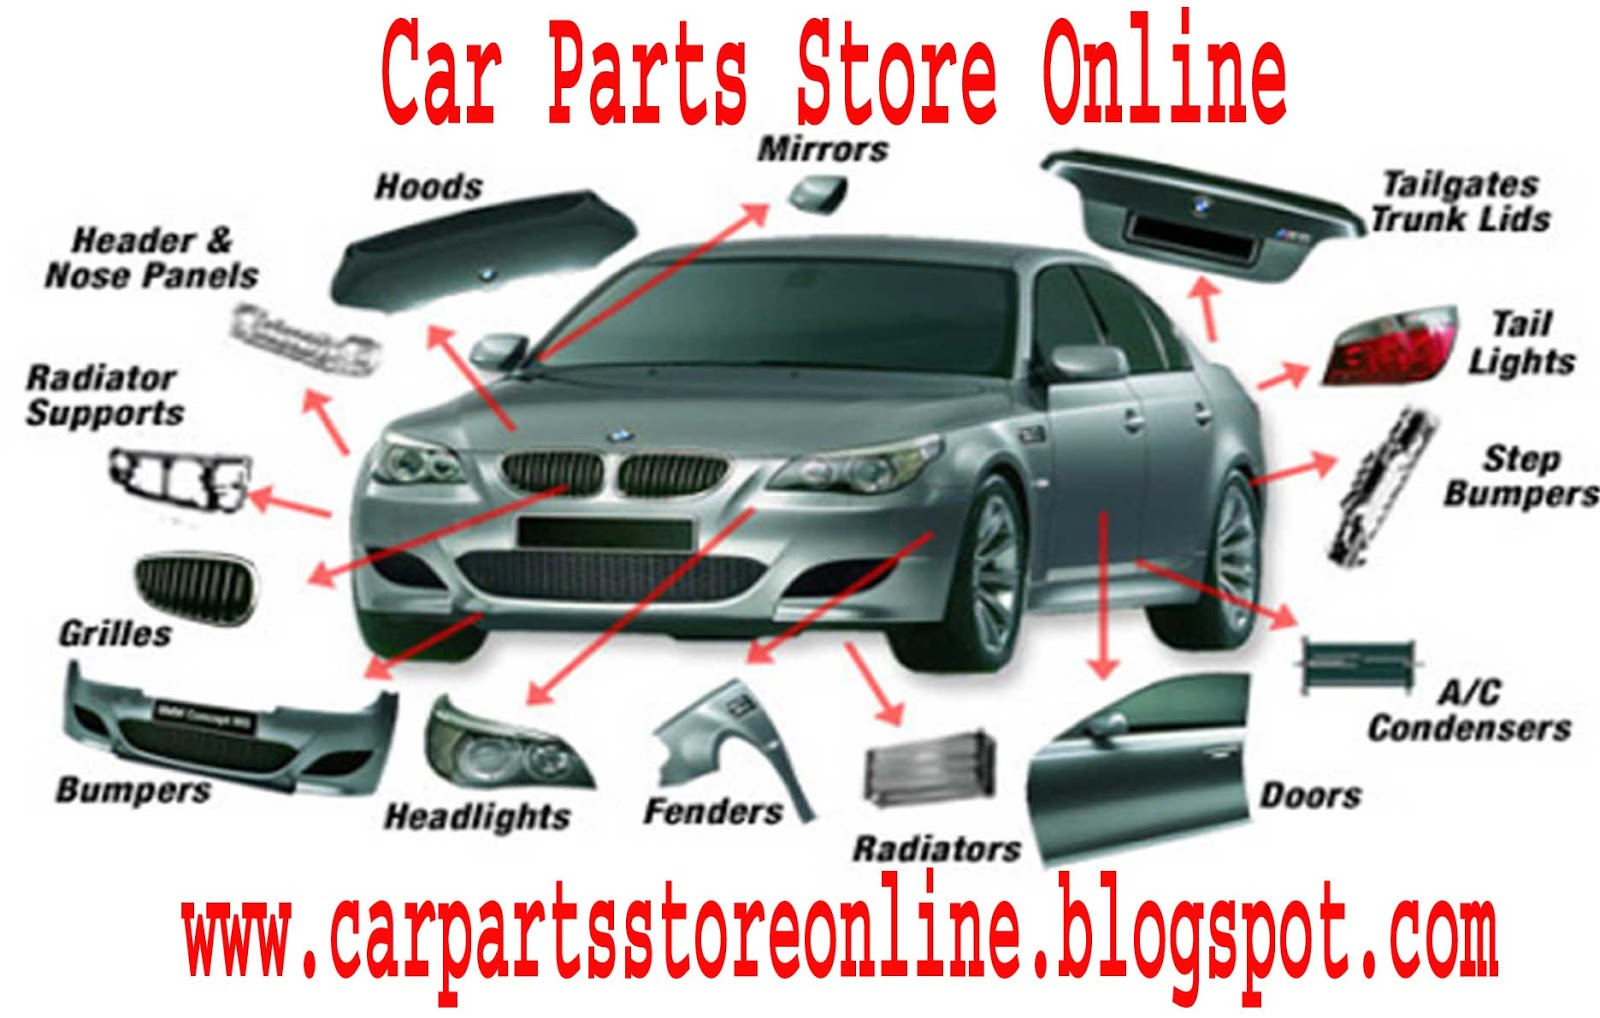 Shop online autos